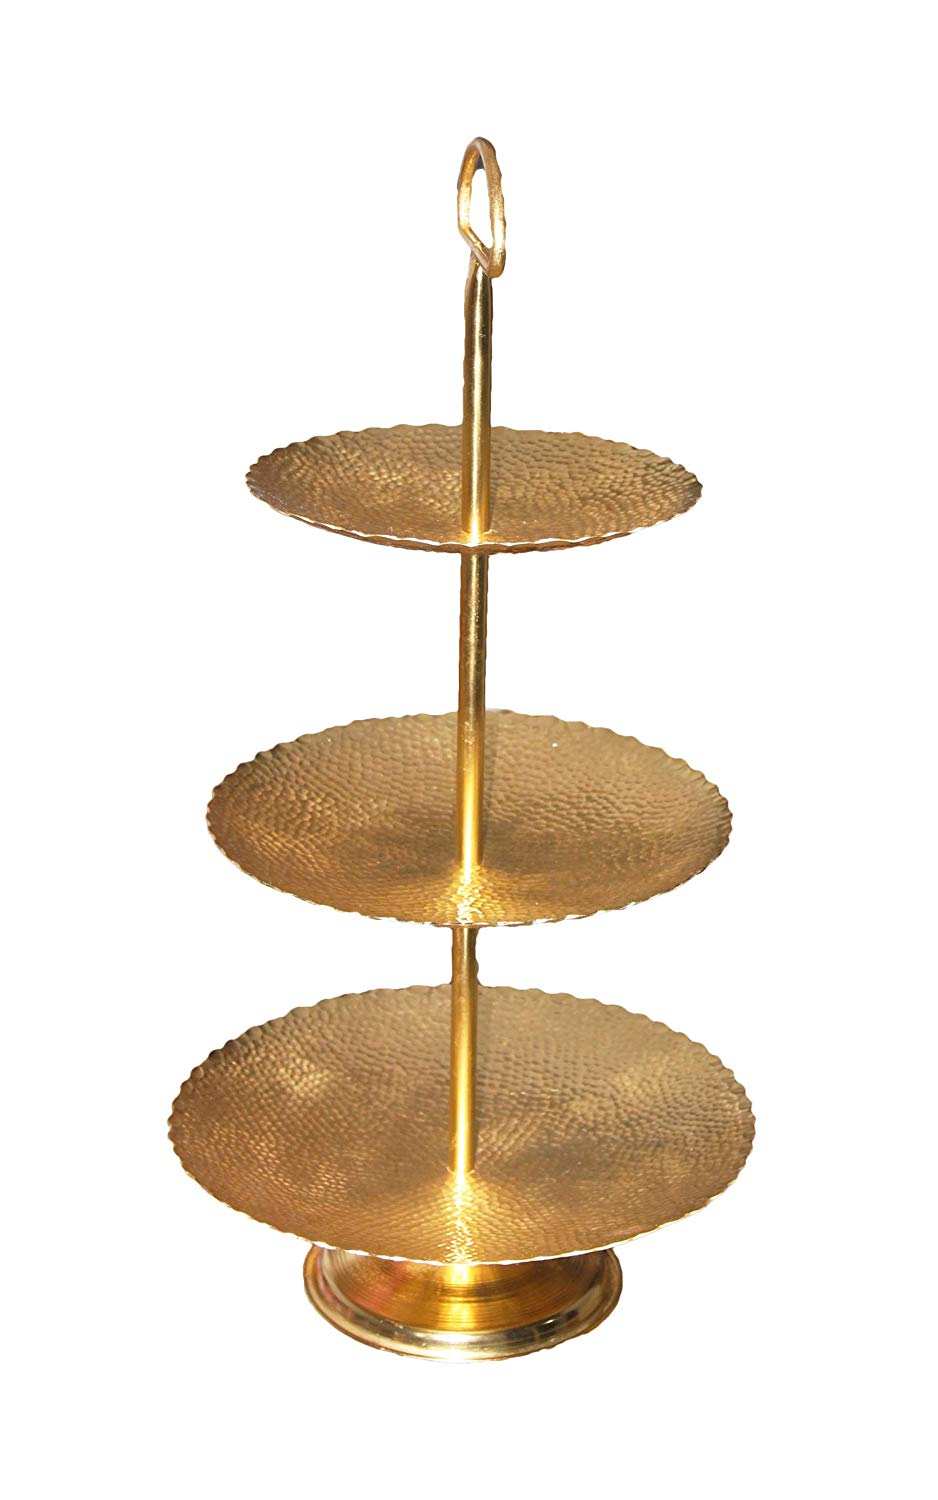 PARIJAT HANDICRAFT Three Tier Cake Stand and Fruit Plate Hammered Brass for Plates with Stand Cakes Desserts Fruits Candy Buffet Stand for Wedding &Home&Party Serving Platter